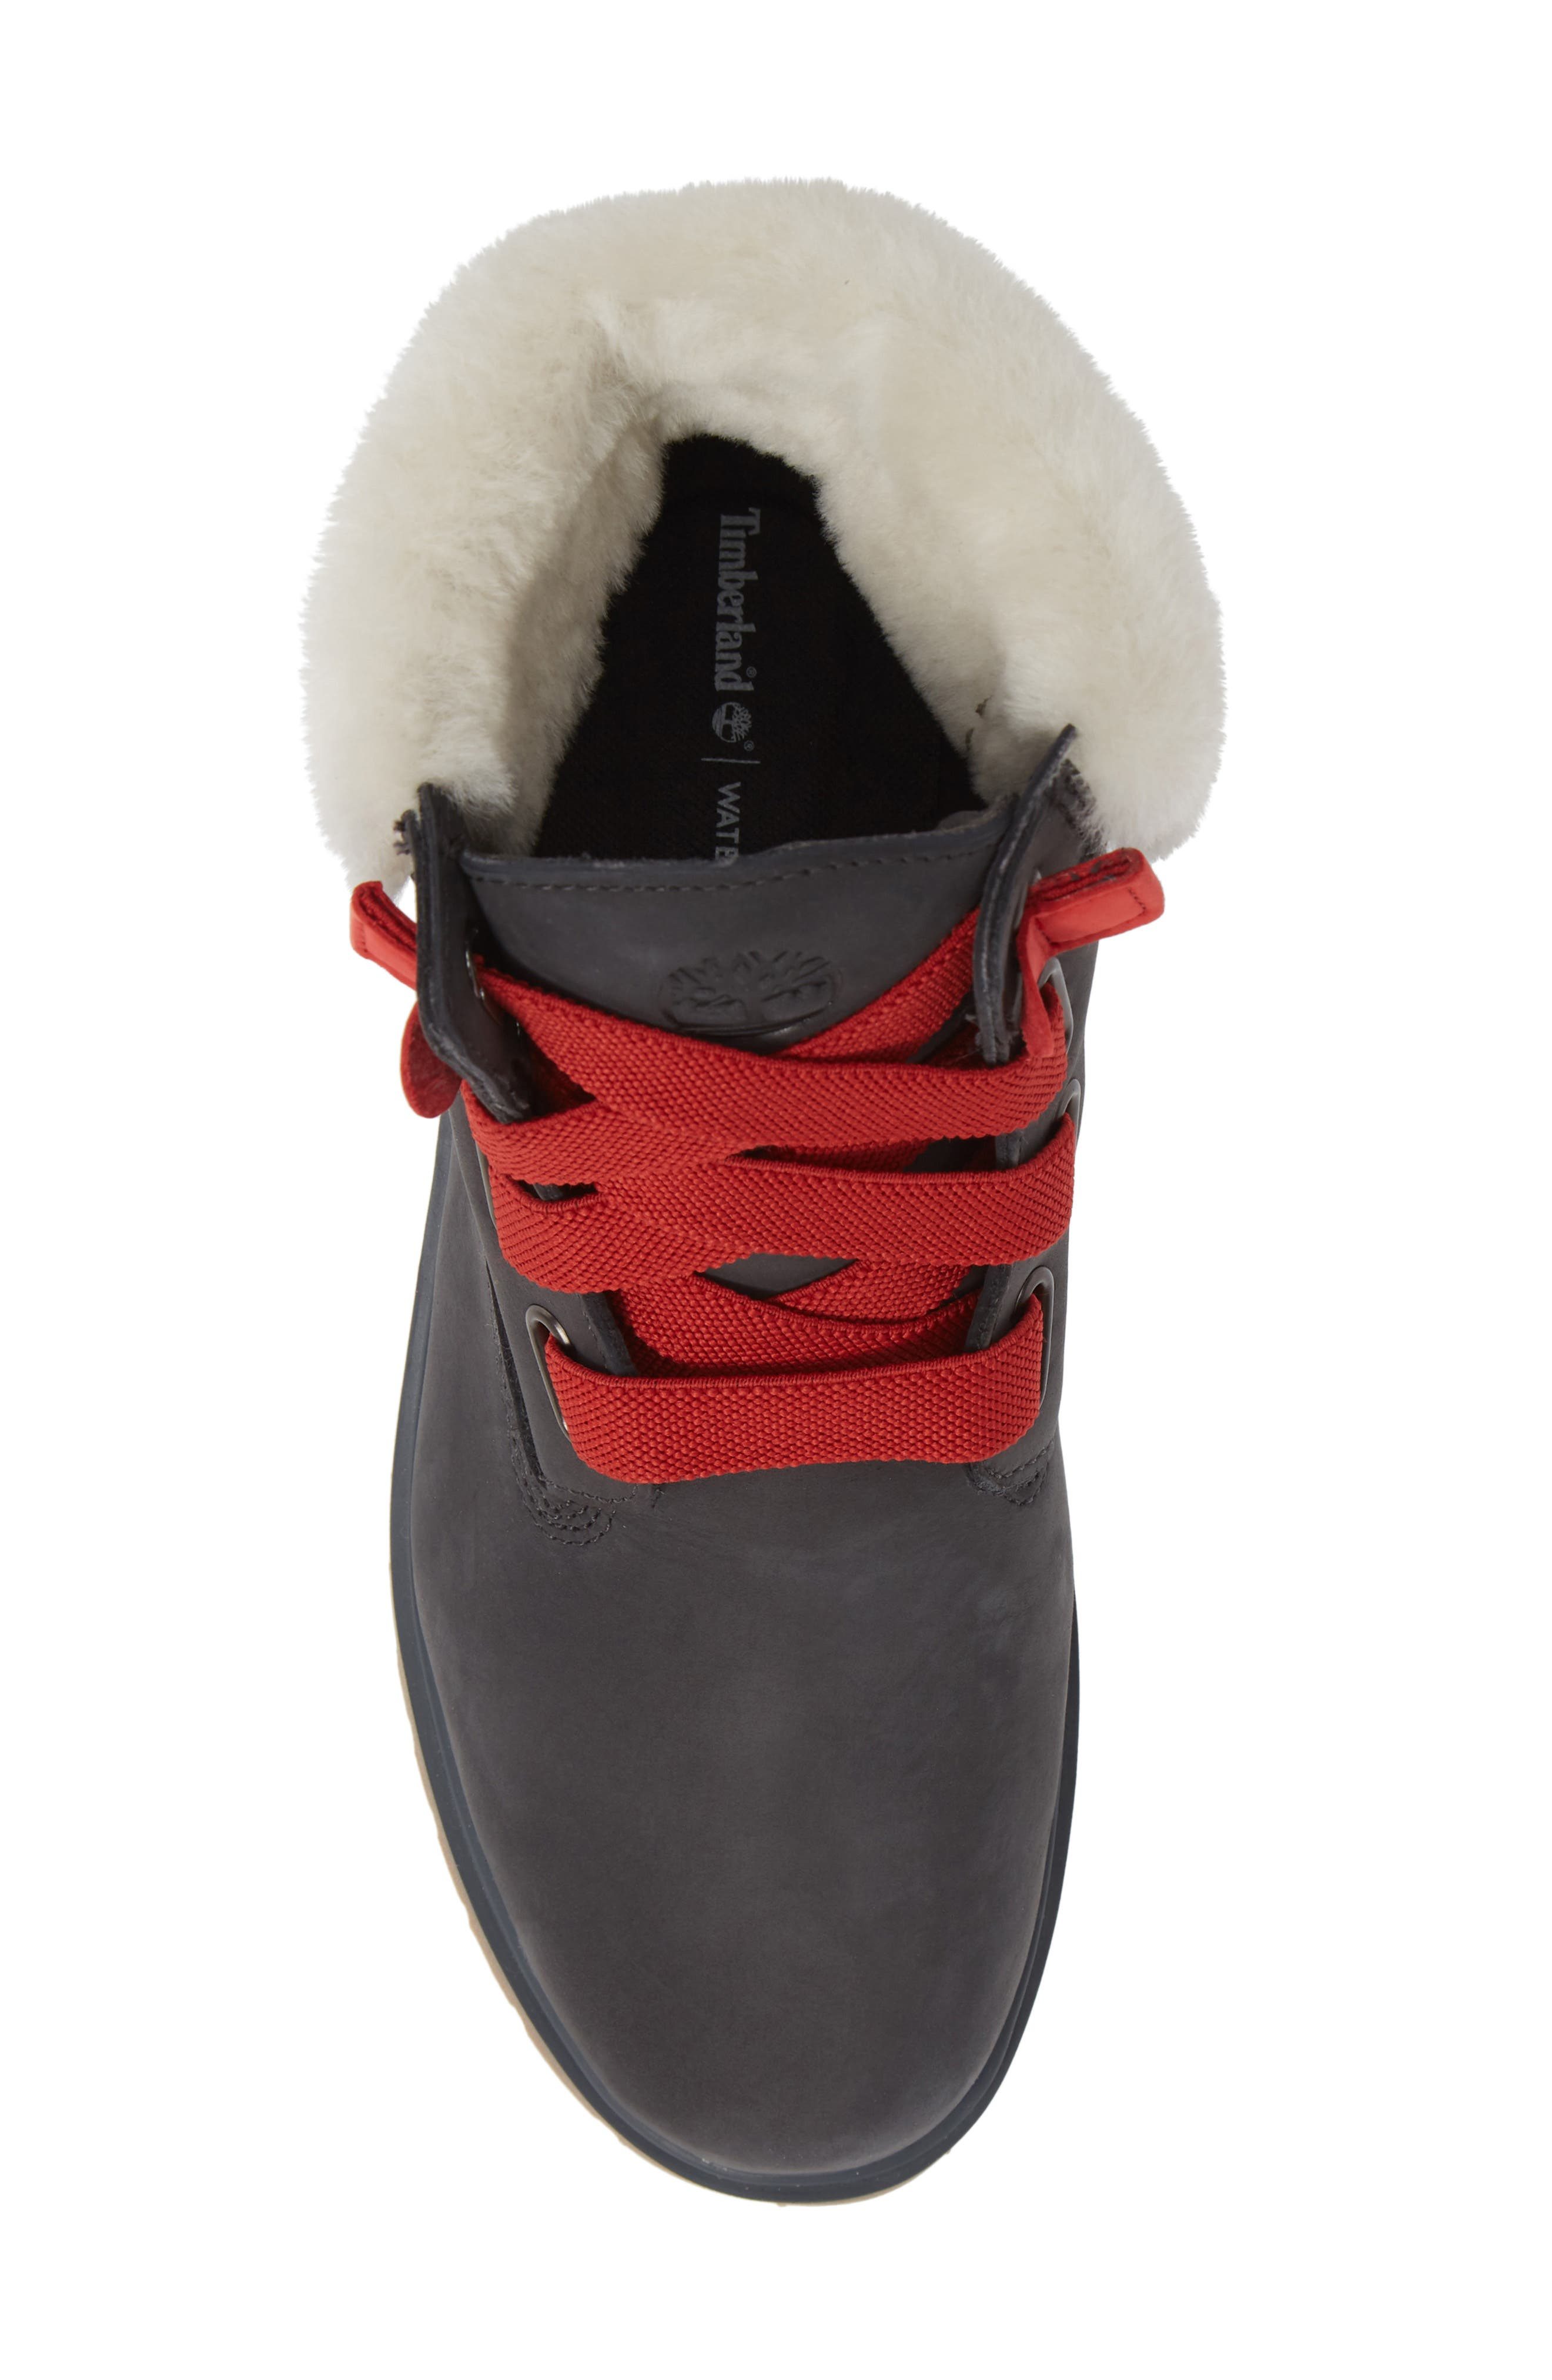 Convenience Waterproof Boot with Genuine Shearling Trim,                             Alternate thumbnail 5, color,                             065